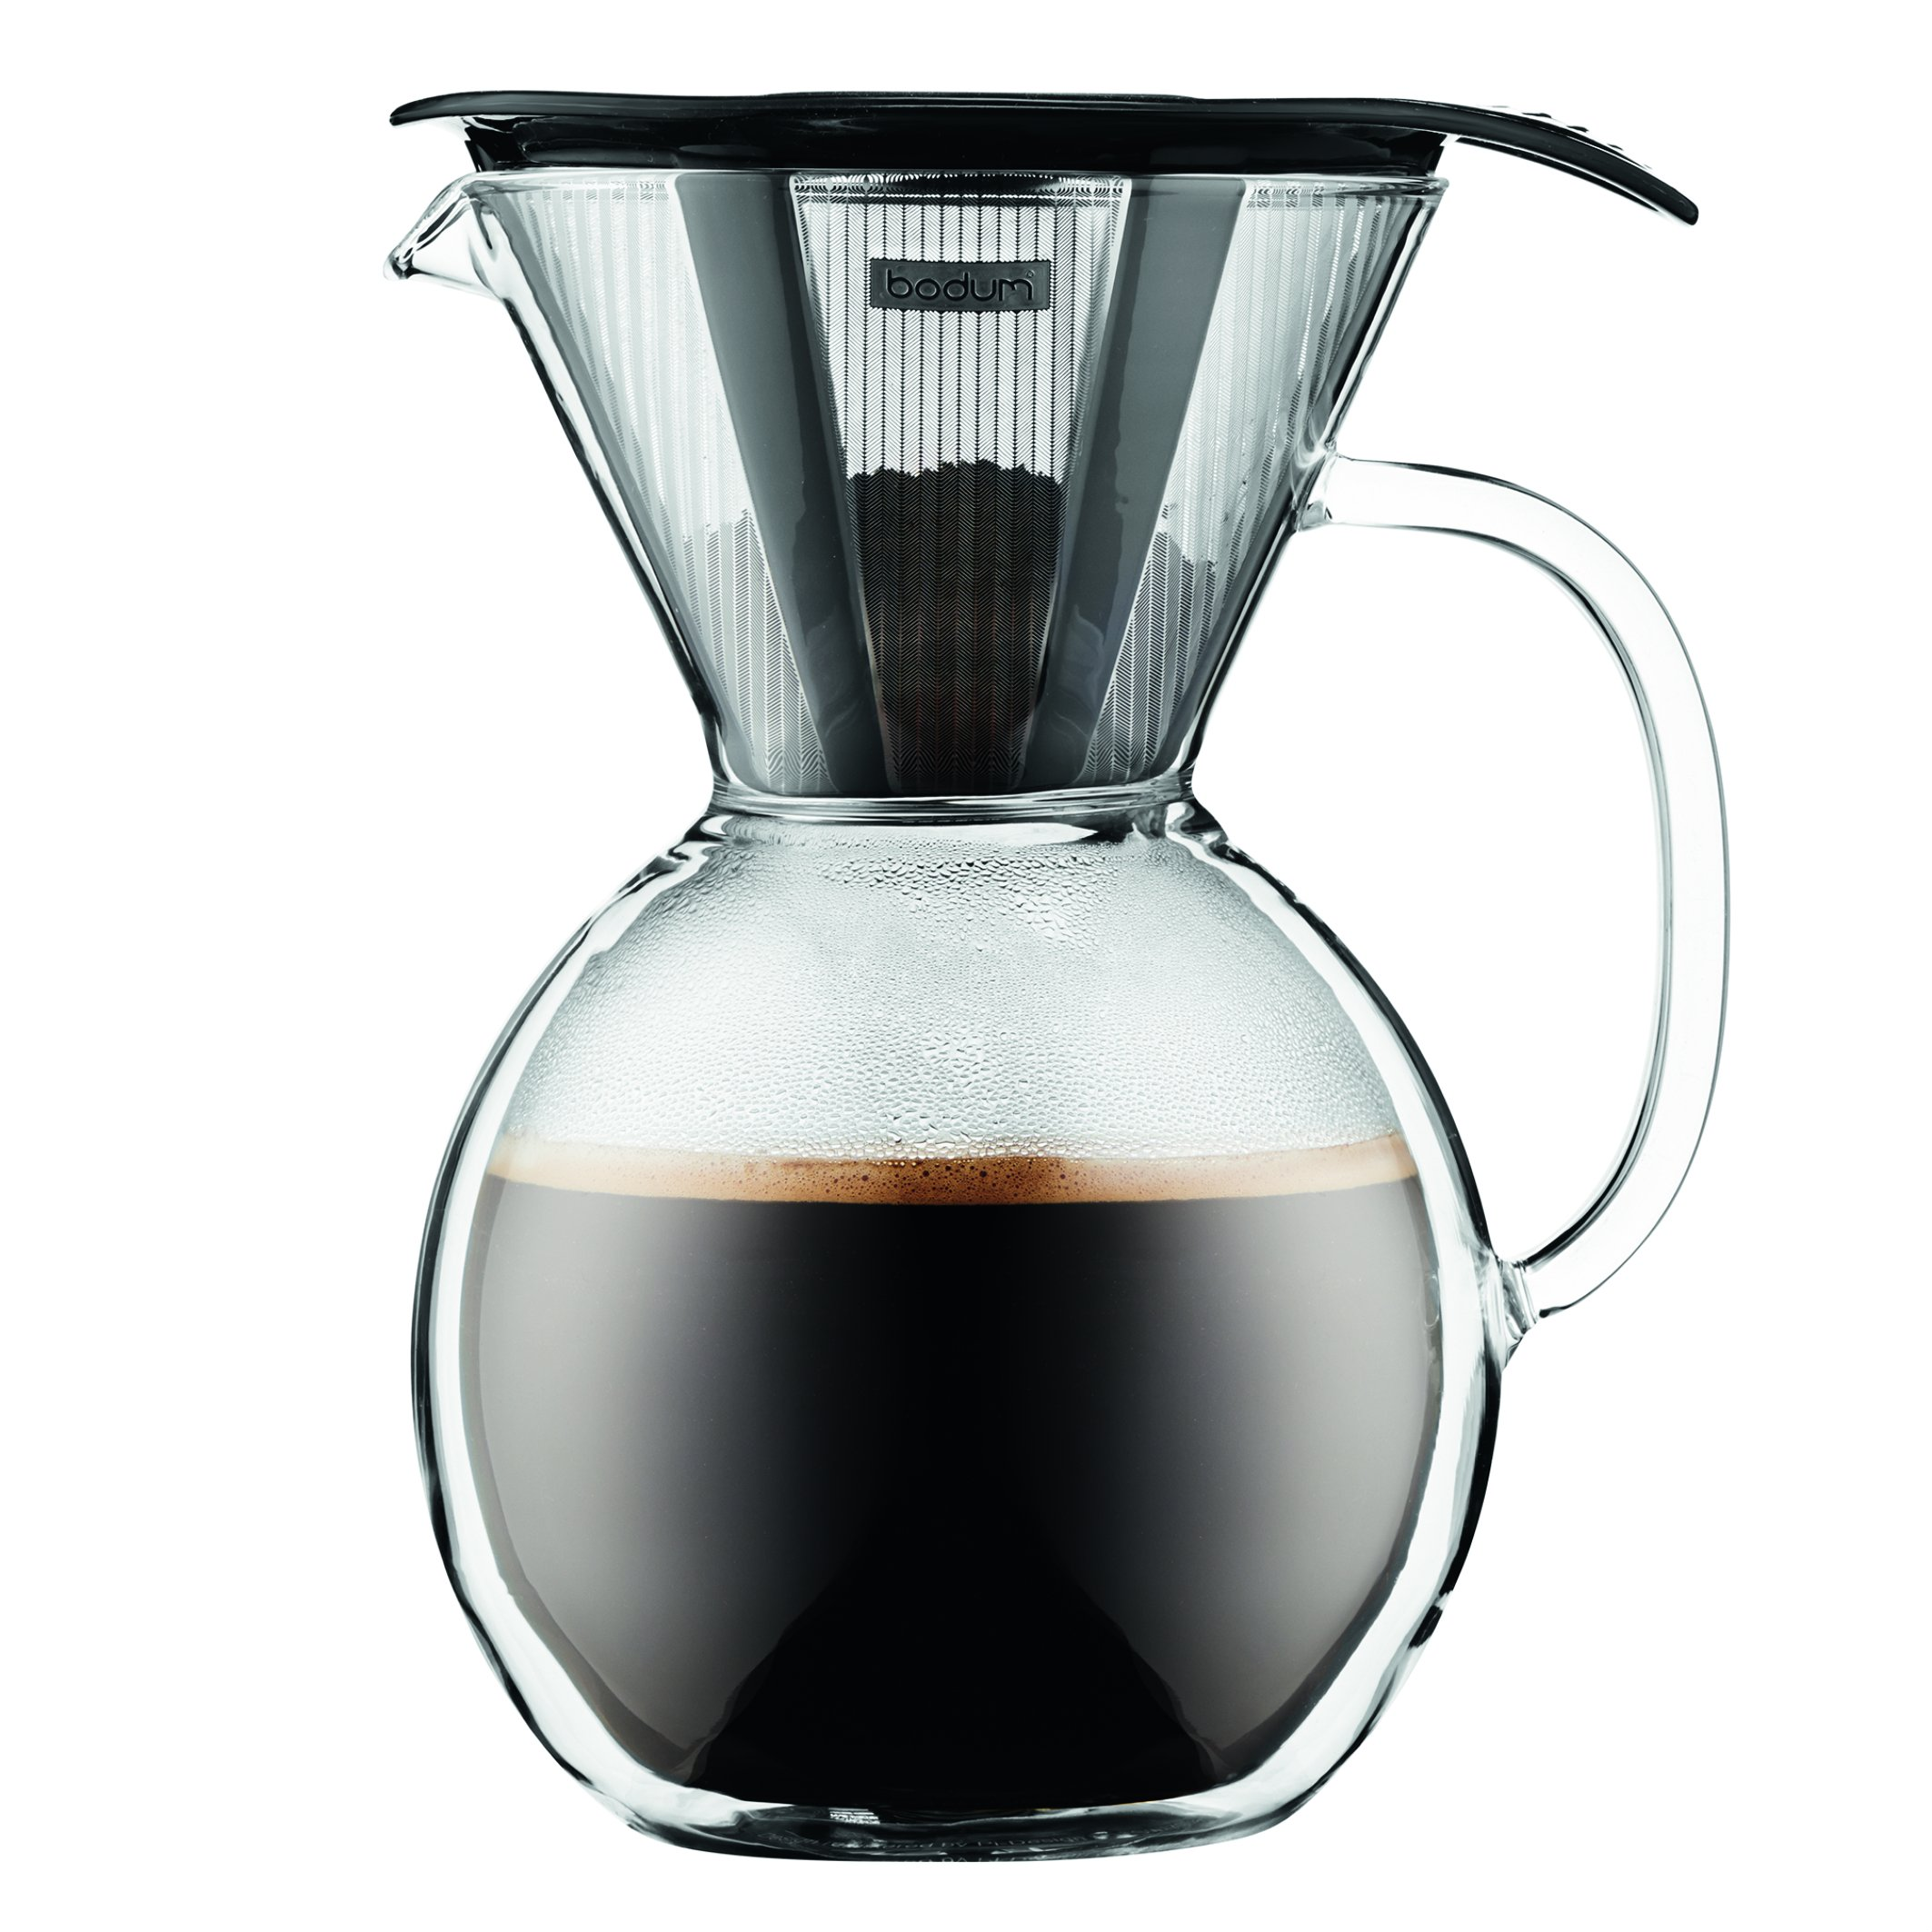 Bodum 11672-01 8 Cup Double Wall Pour Over Coffee Maker with Glass Handle, Black by Bodum